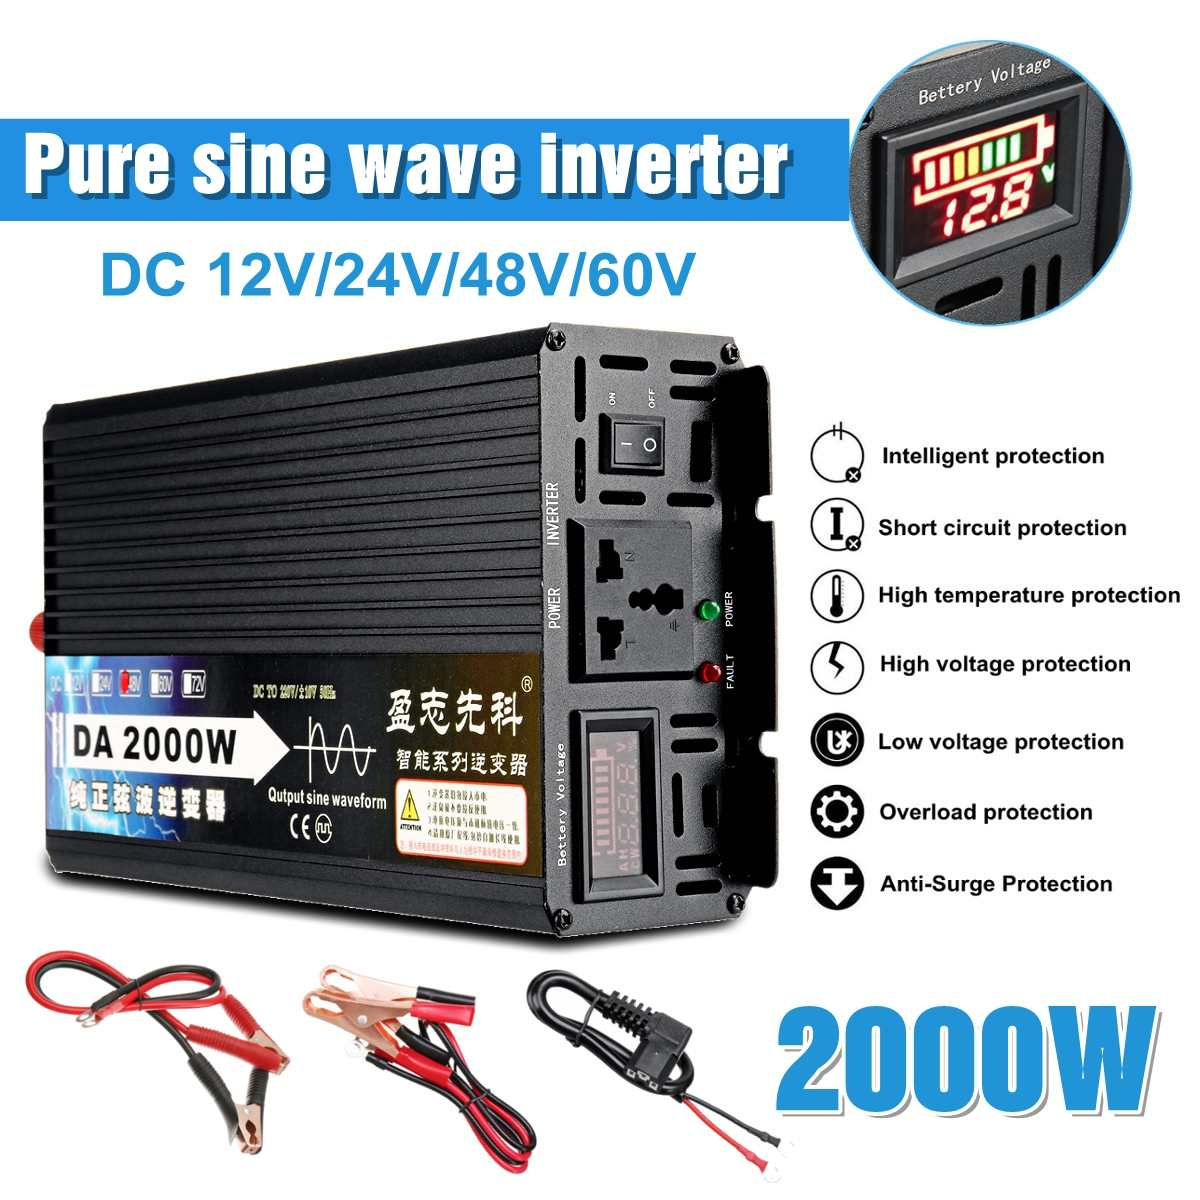 <font><b>2000W</b></font> Peaks Pure Sine Wave <font><b>Inverter</b></font> DC12V/<font><b>24V</b></font>/48V/60V TO <font><b>220V</b></font> Power <font><b>Inverter</b></font> Voltage Converter image